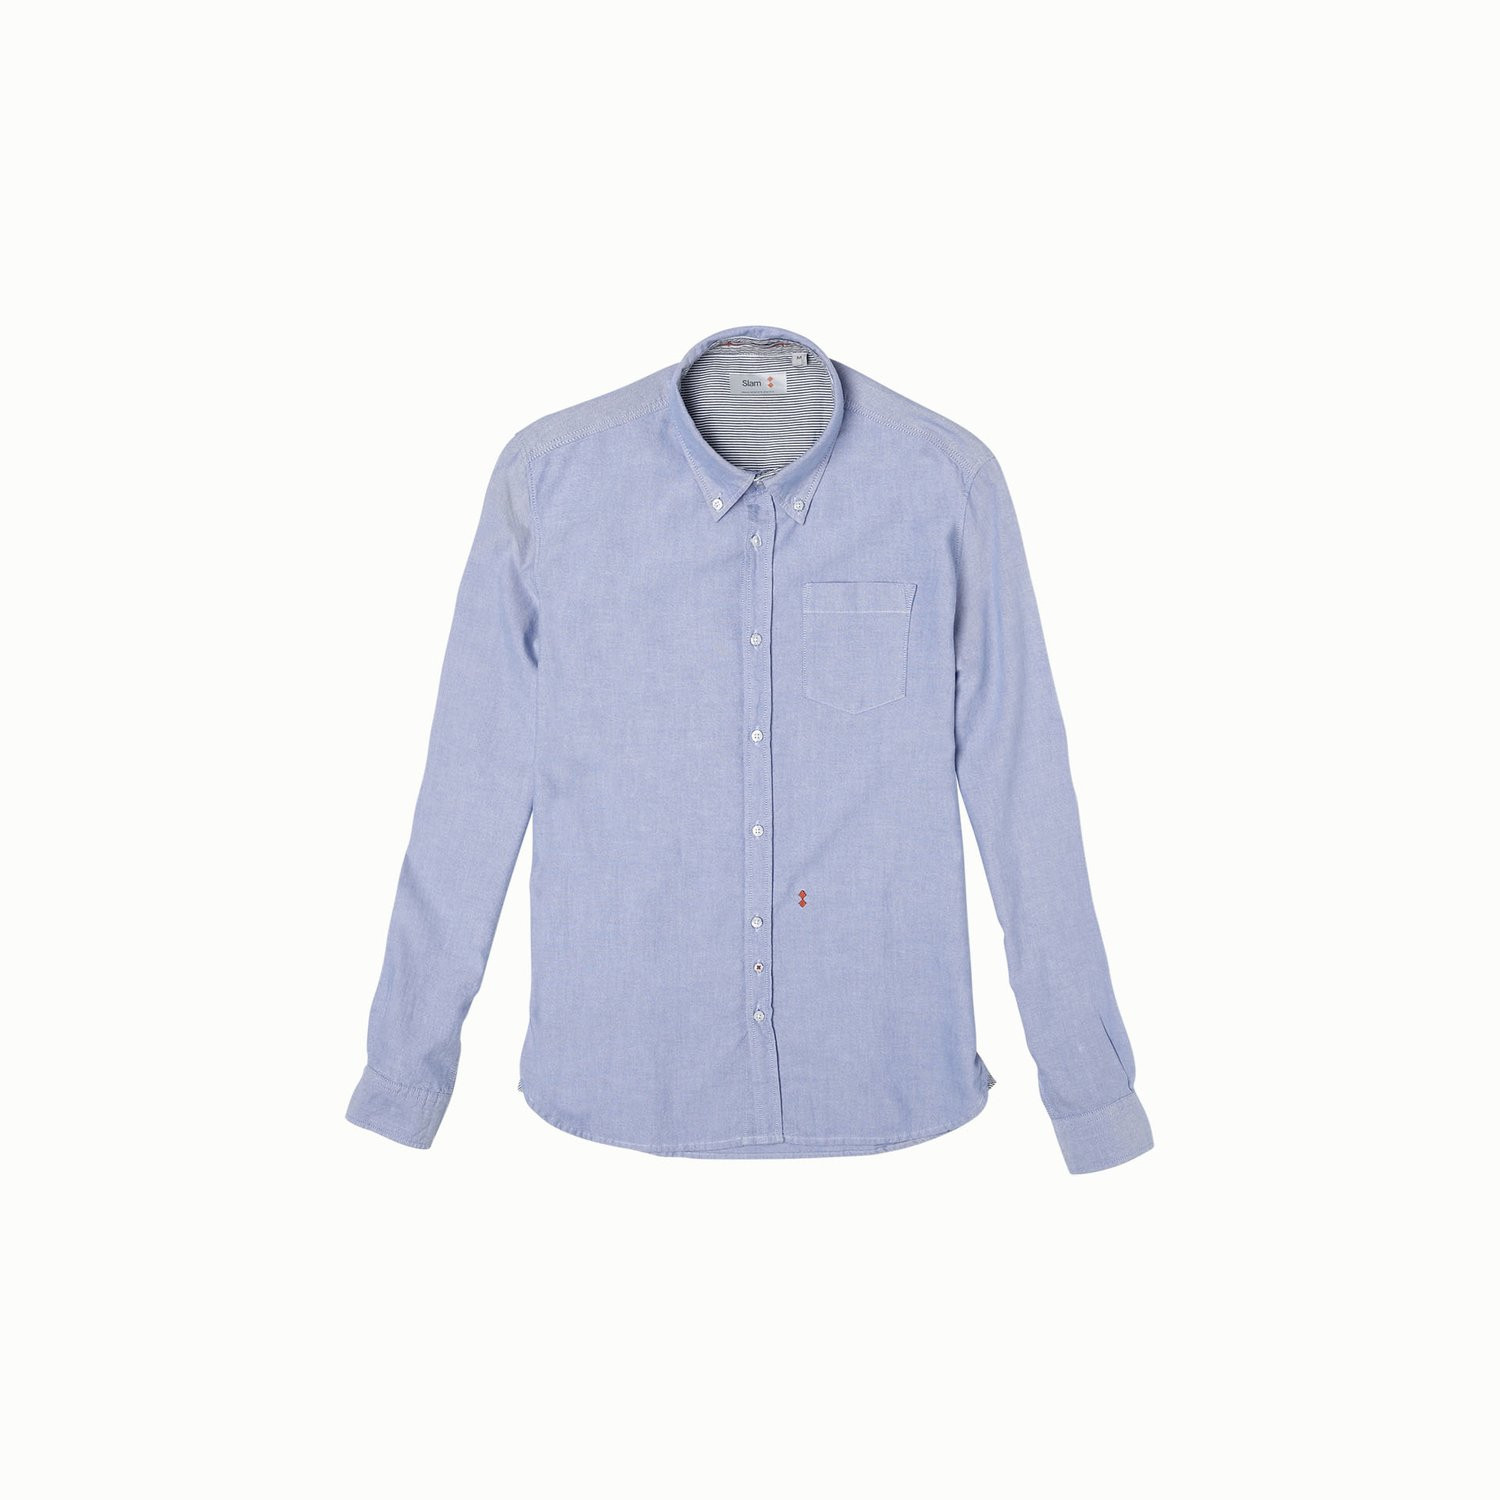 B75 shirt - Light Blue